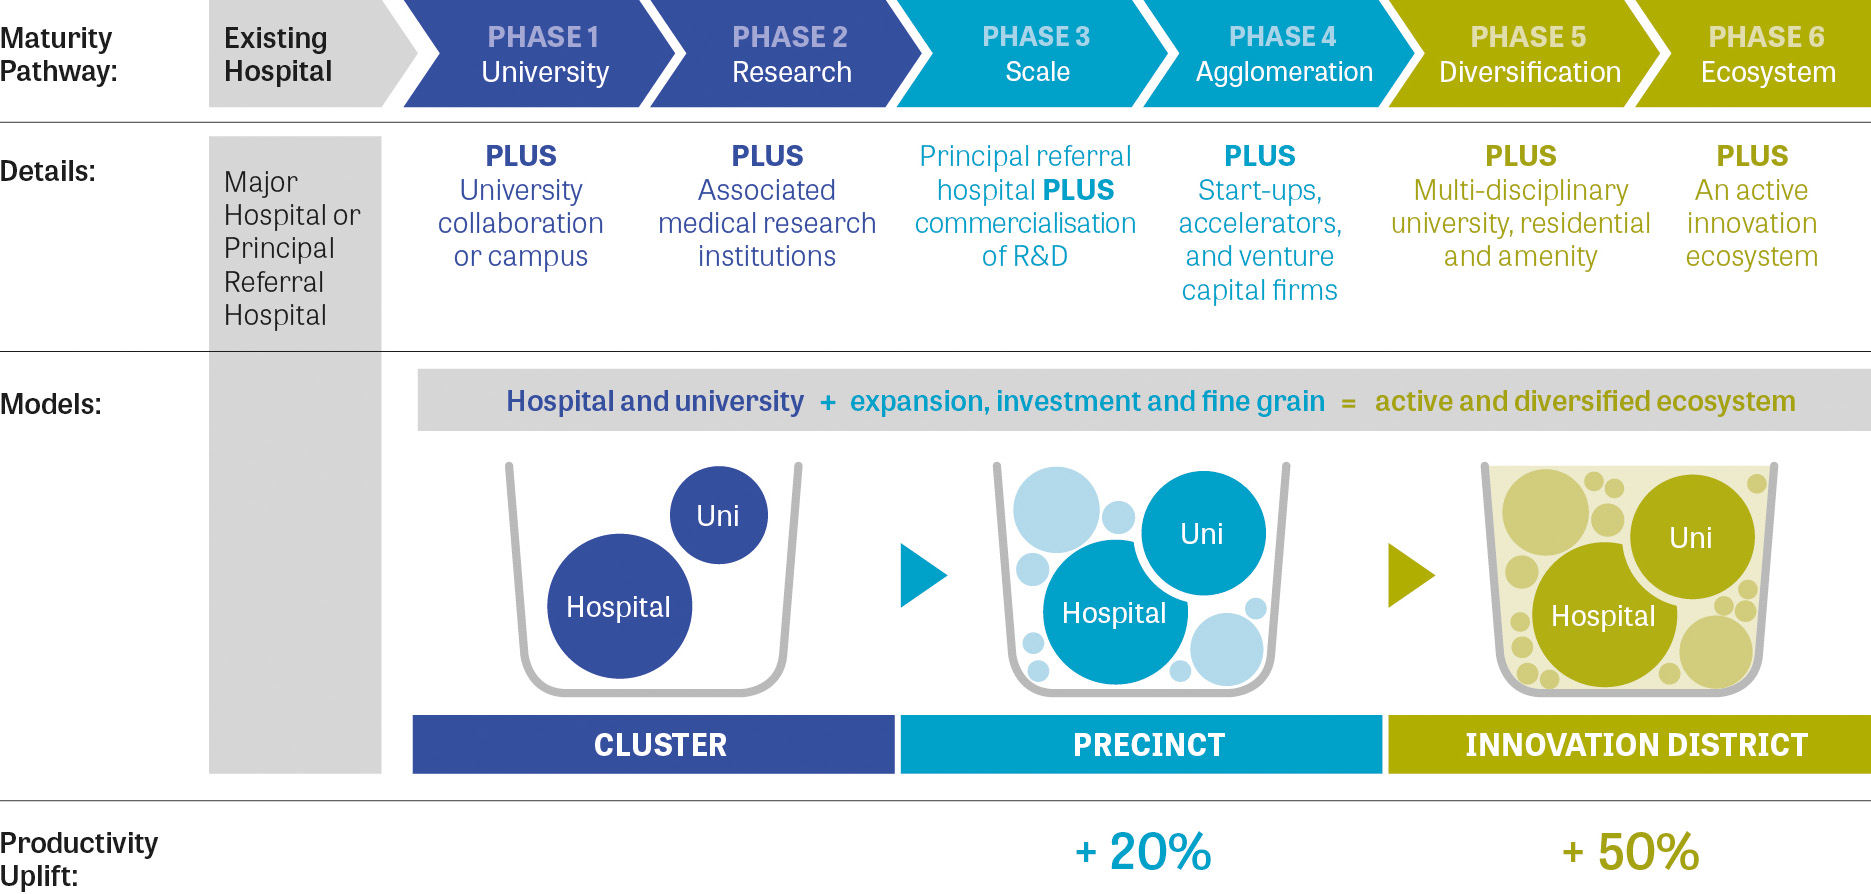 Diagram showing the six-phase maturity pathway from existing hospital to Innovation District for health and education precincts. Phases included University, Research, Scale, Agglomeration, Diversifications and Ecosystem.